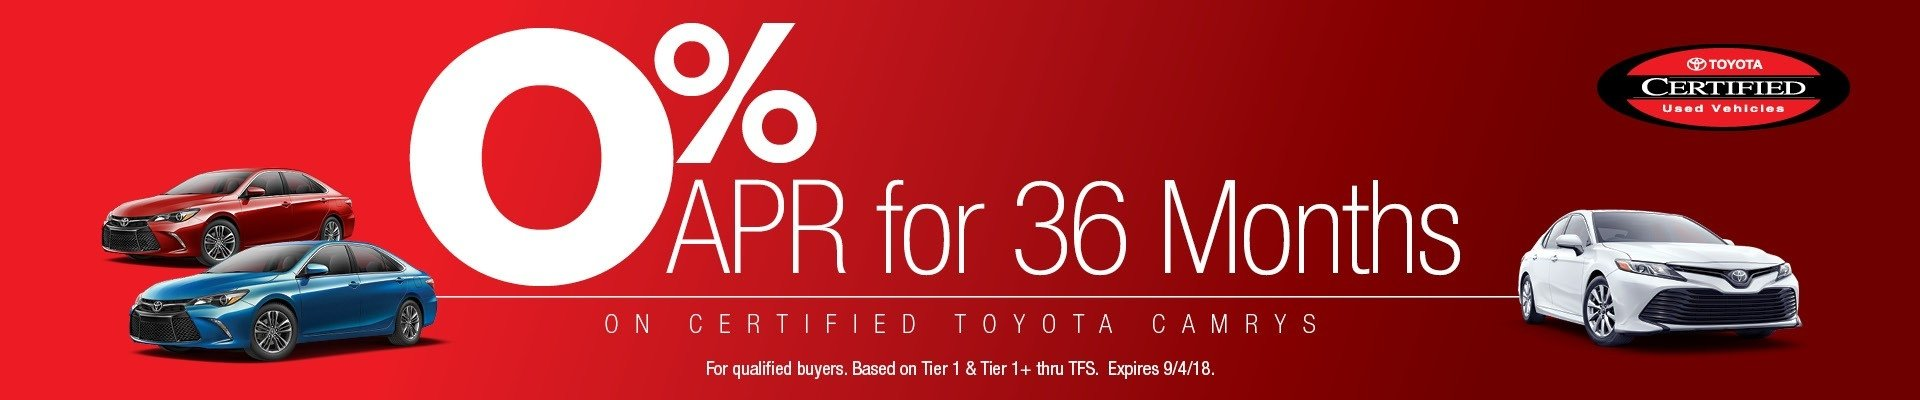 0% for 36 Months on Certified Camry's